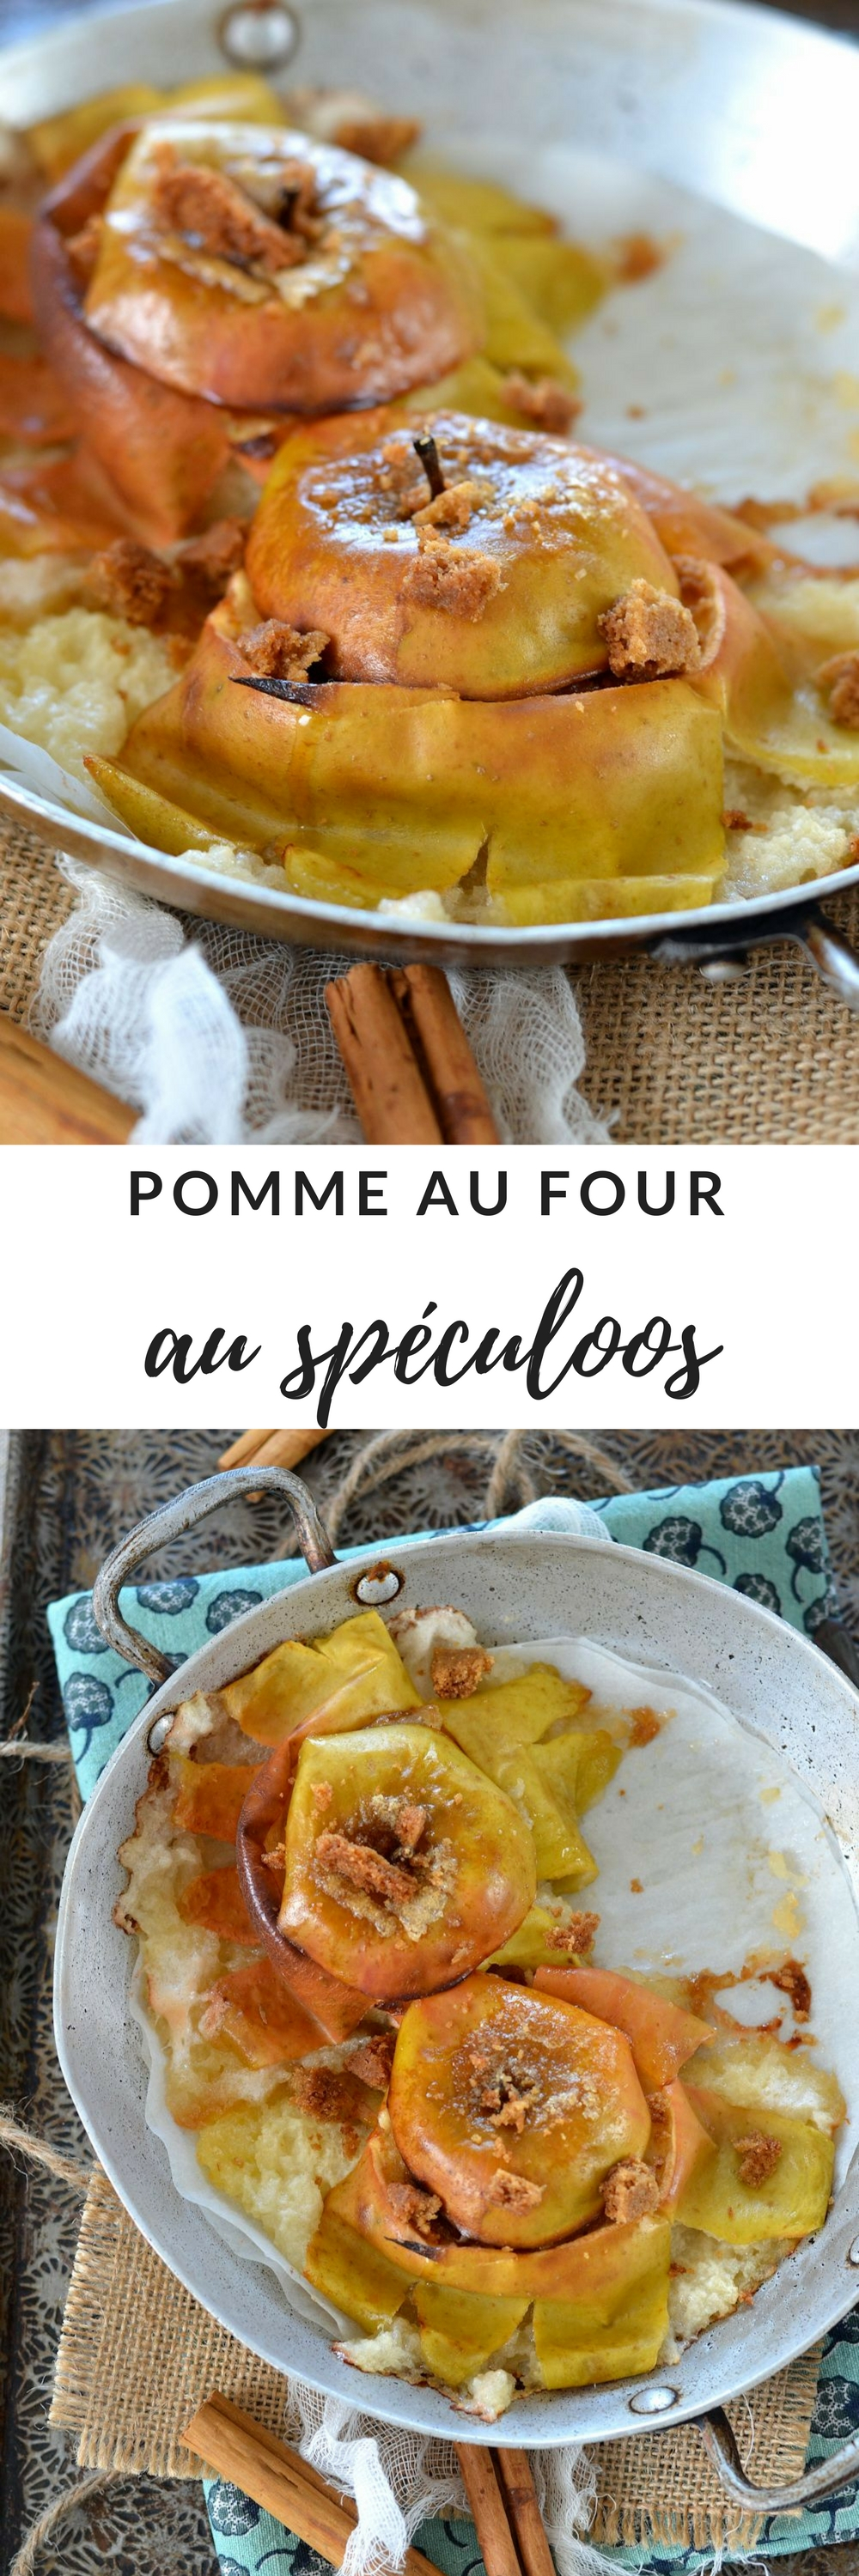 pomme au four speculoos